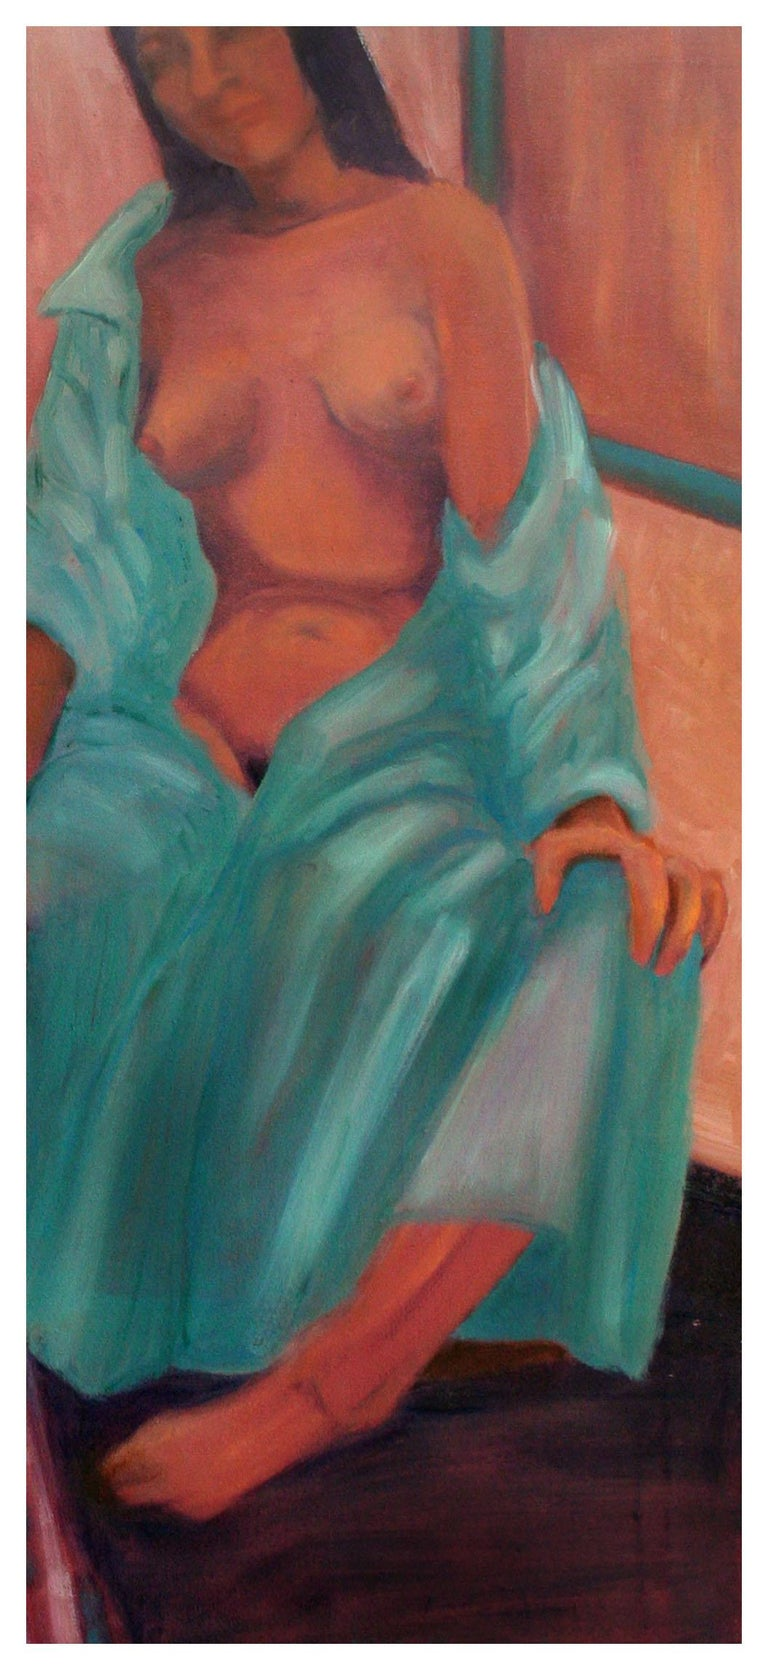 Nude Study Models Figurative - American Modern Painting by Molly E. Brubaker